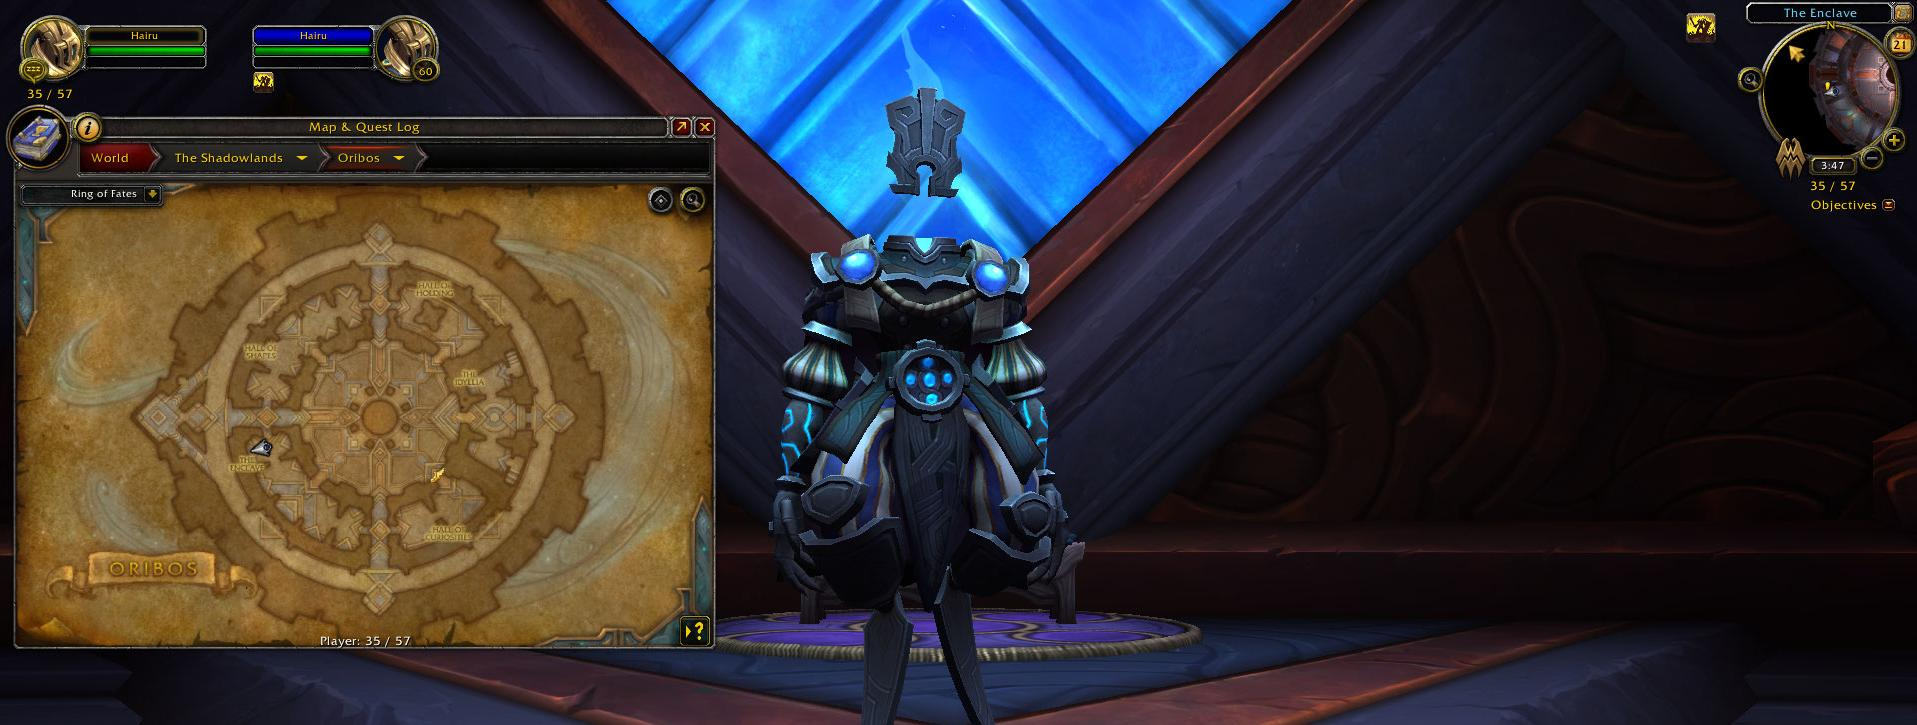 Shadowlands Pvp Season 1 Hub Pvp Vendors How To Upgrade Pvp Gear And Rewards World Of Warcraft Icy Veins